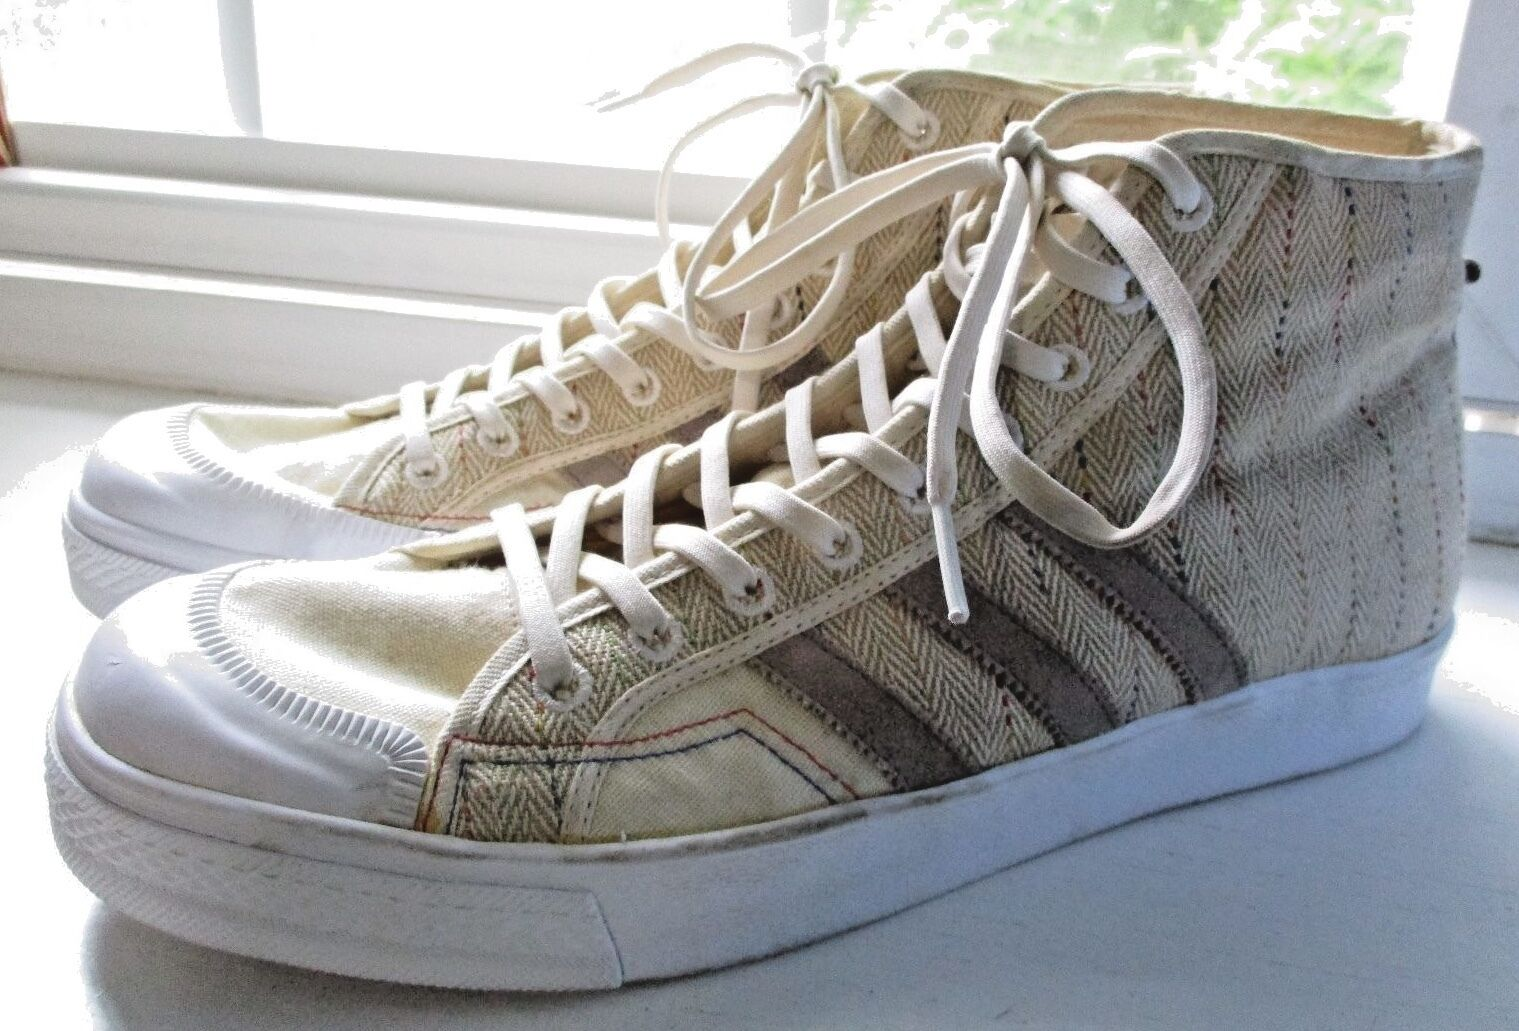 Men's ADIDAS Recycled High Tops SUPER GRUN Size 13 Fully Biodegradeable NEW